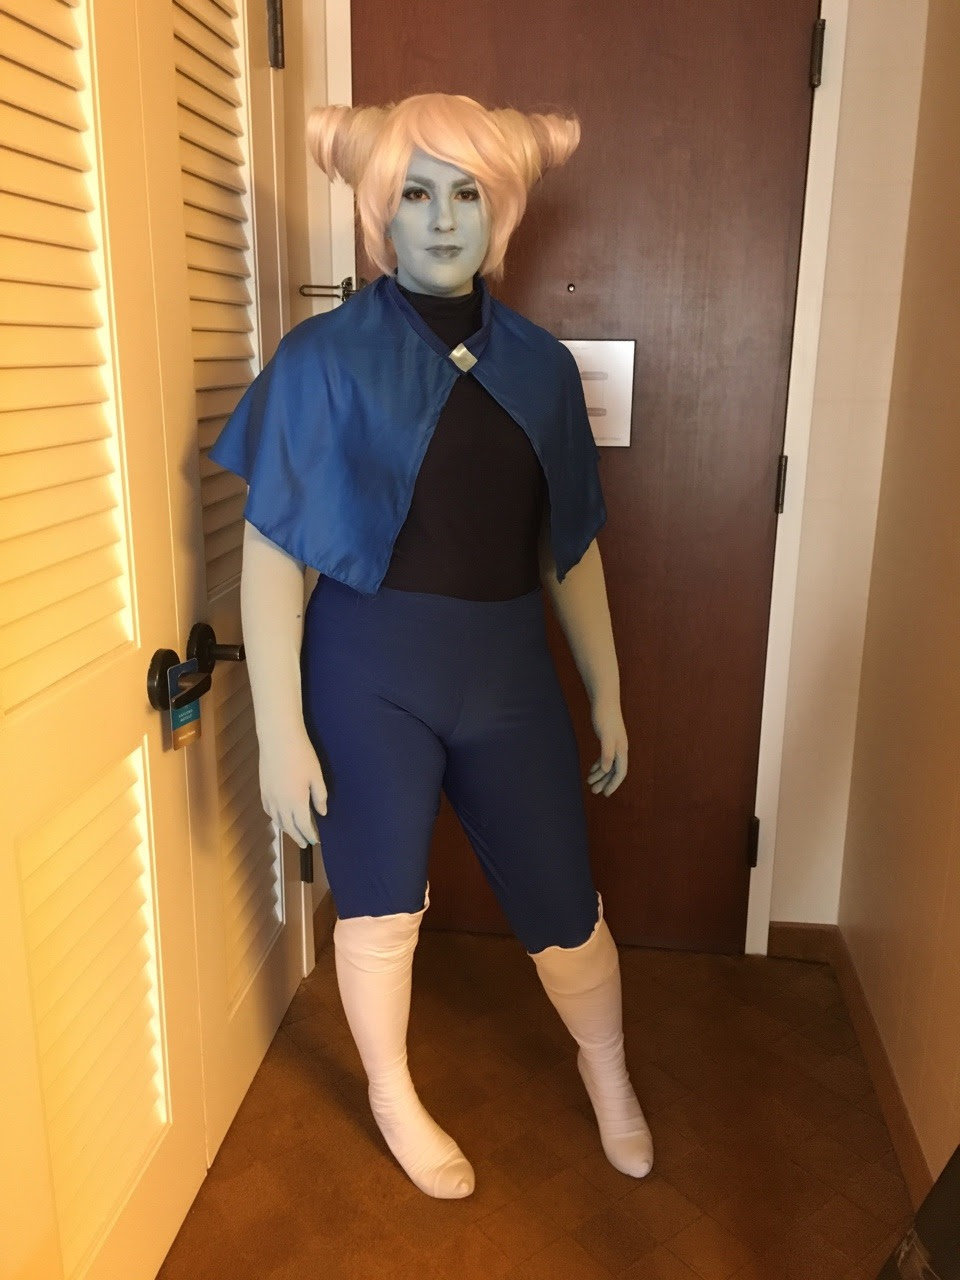 Hung out as holly blue agate at Katsucon today! Let me know if you got any photos of me❤️